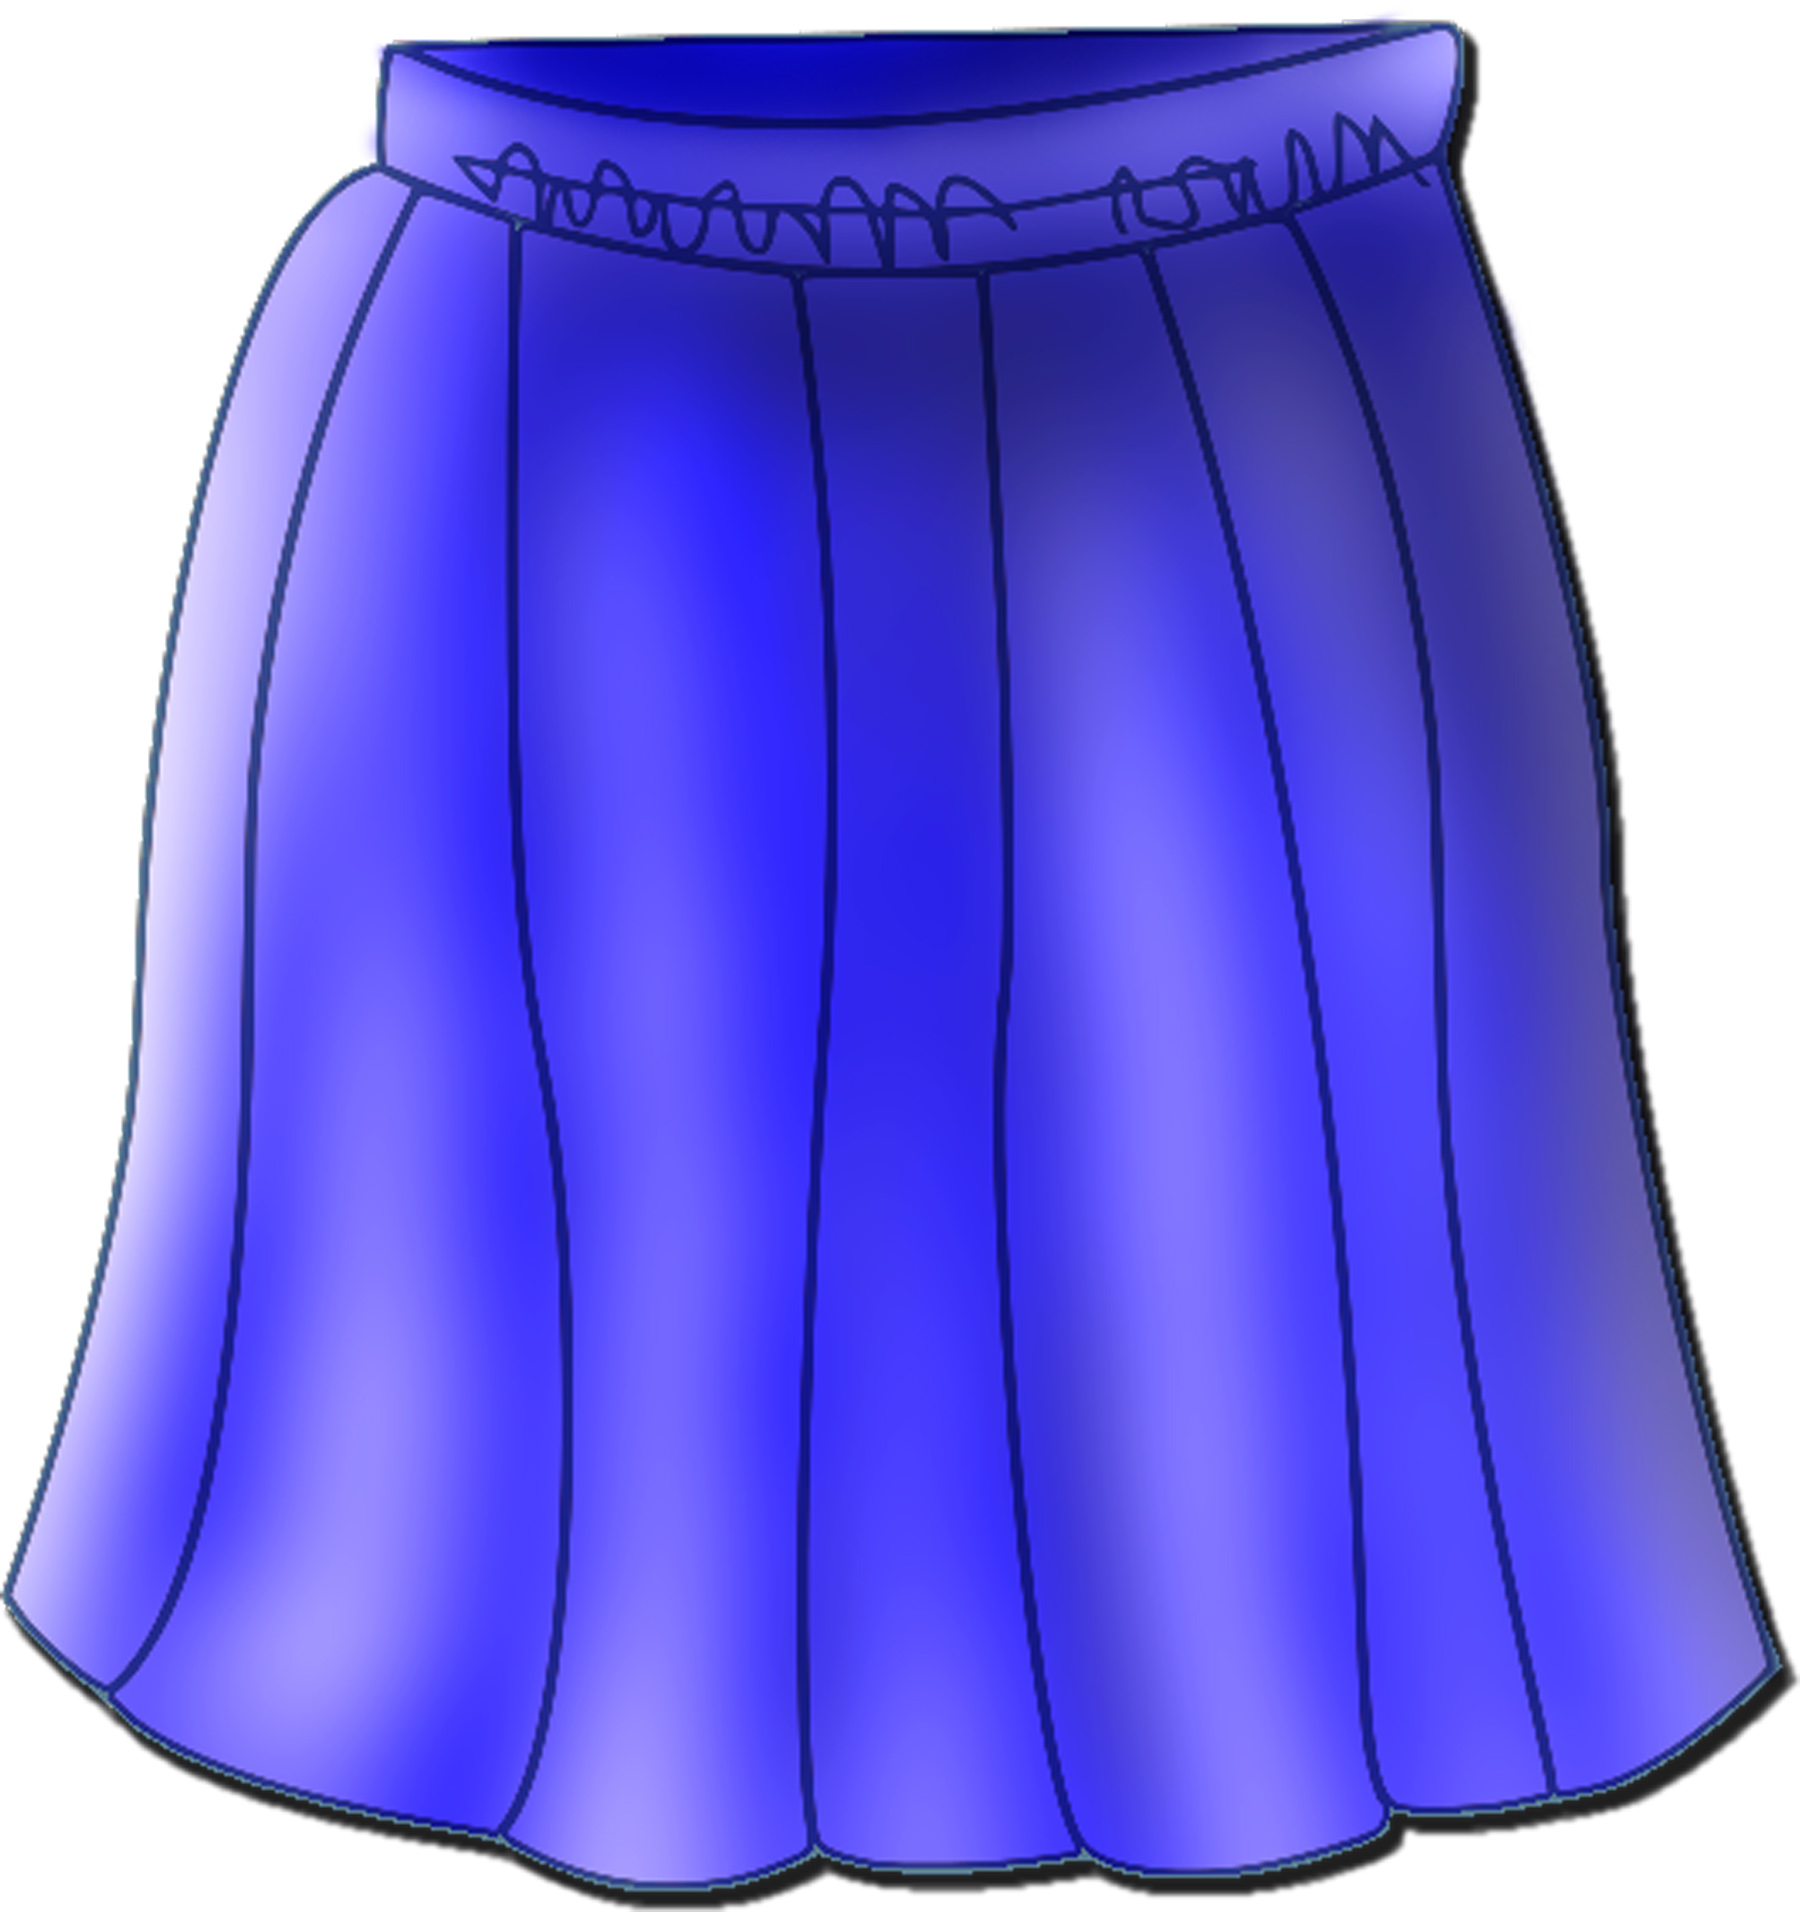 clipart women's clothing - photo #48